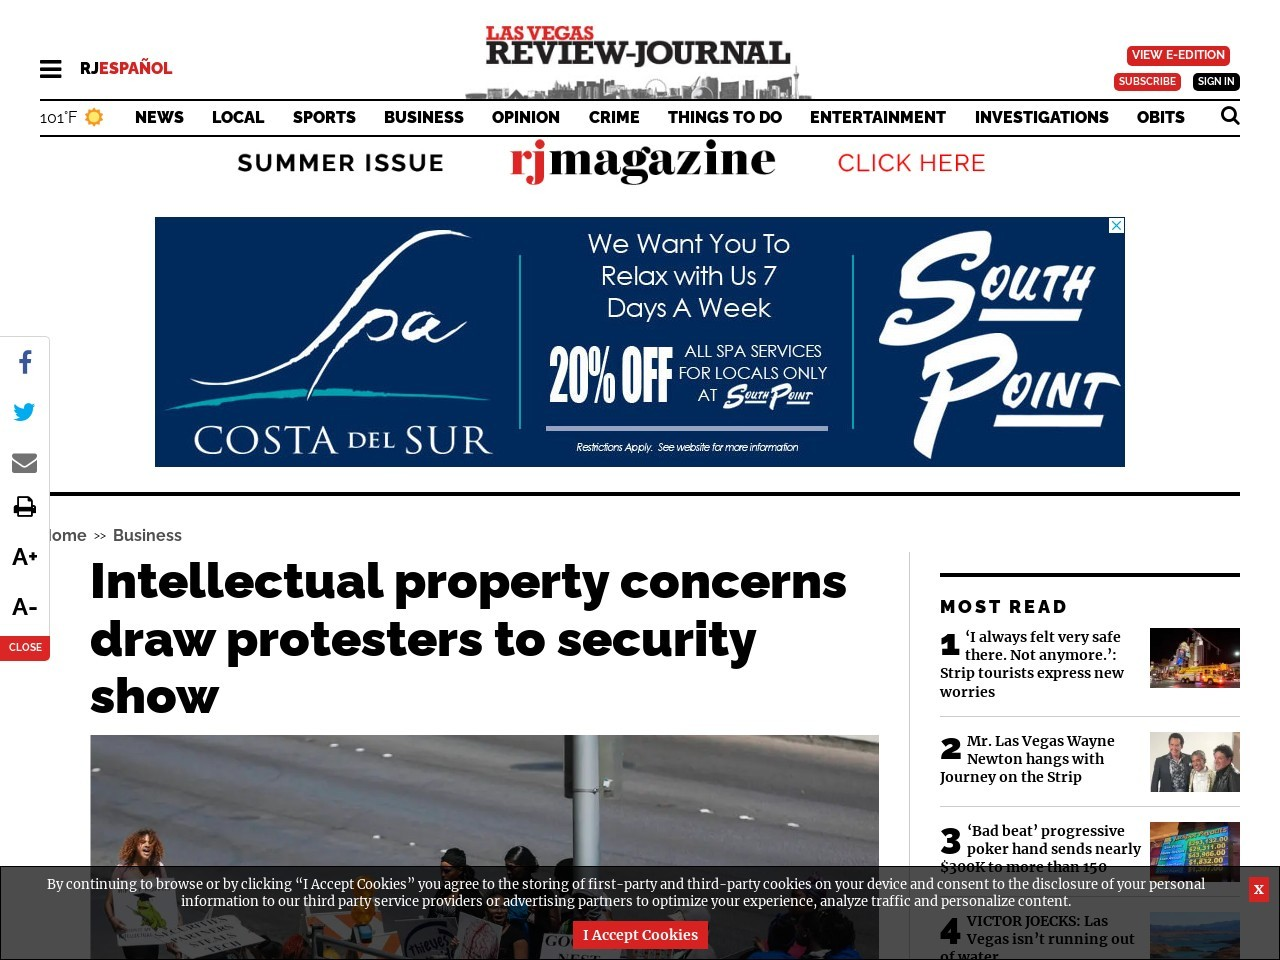 Intellectual property concerns draw protesters to security show